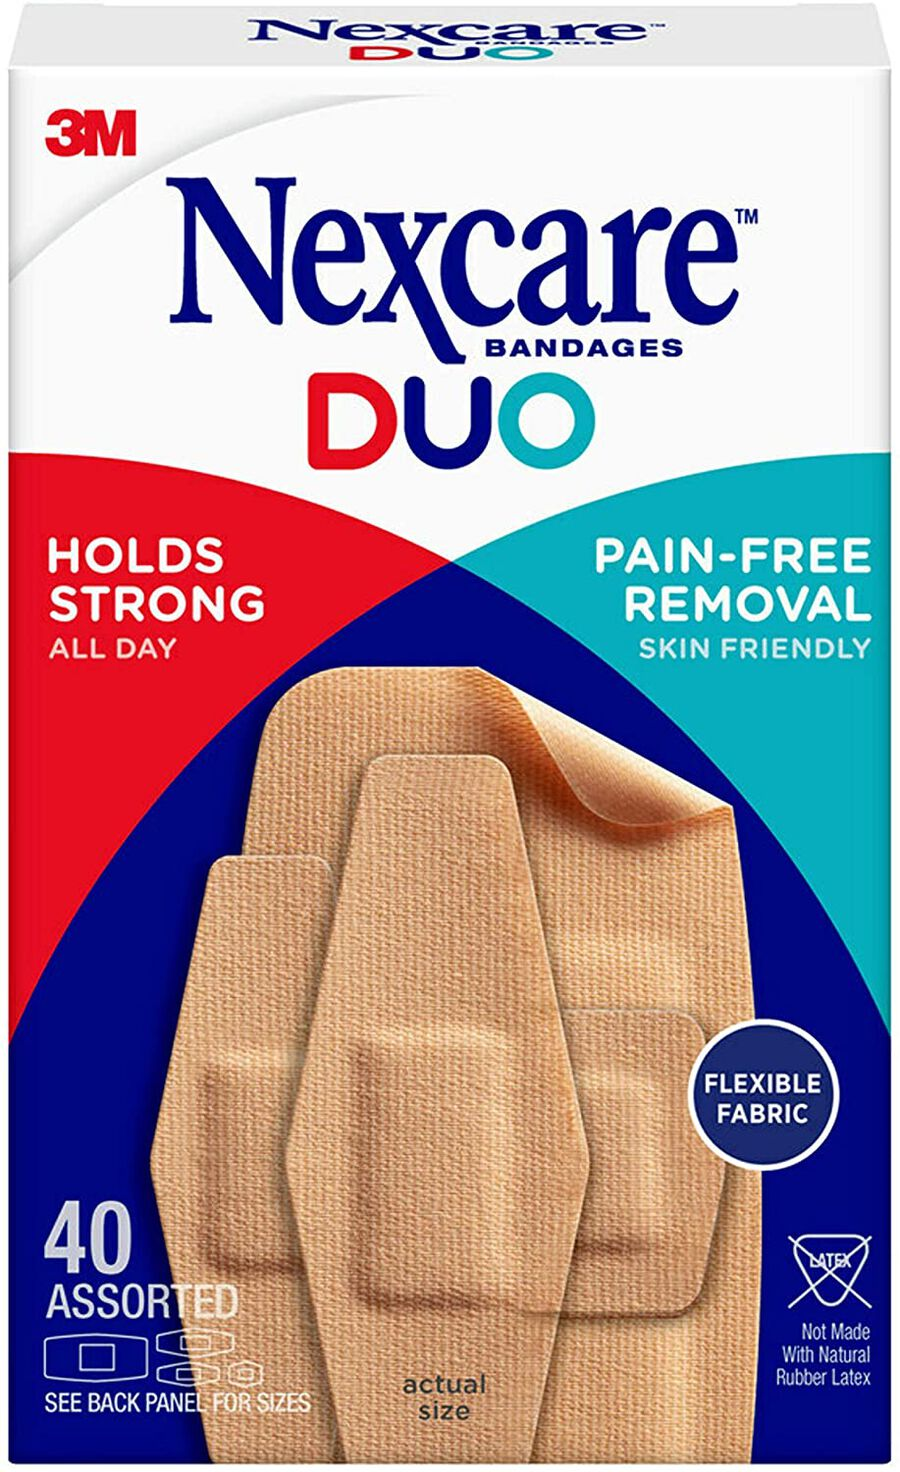 Nexcare DUO Bandage, Assorted, 40ct, , large image number 0